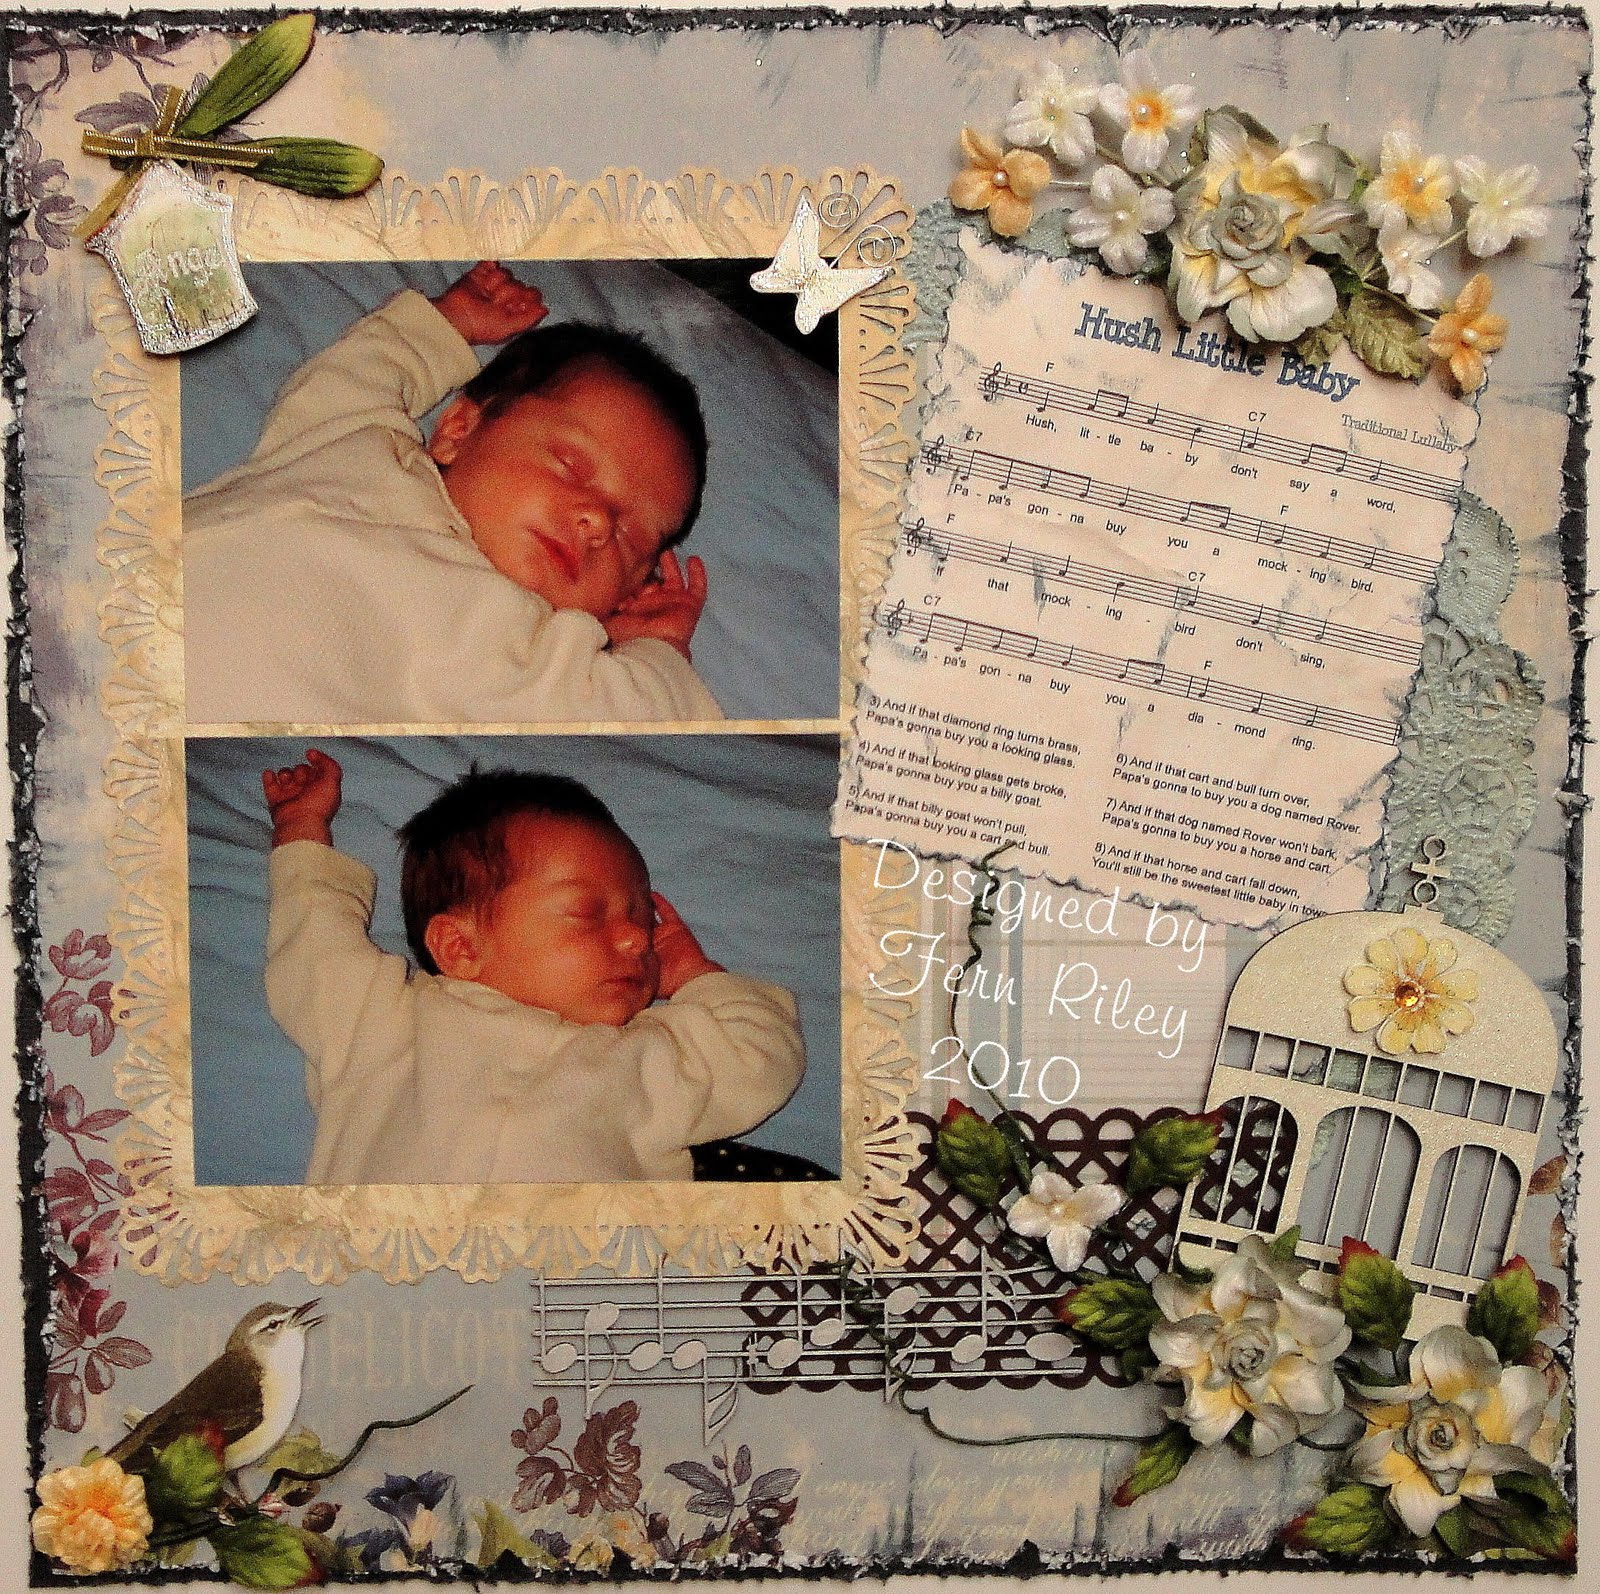 Fern S Creations Hush Little Baby Sketches In Thyme Challenge Top 5 Winner At Cupcake